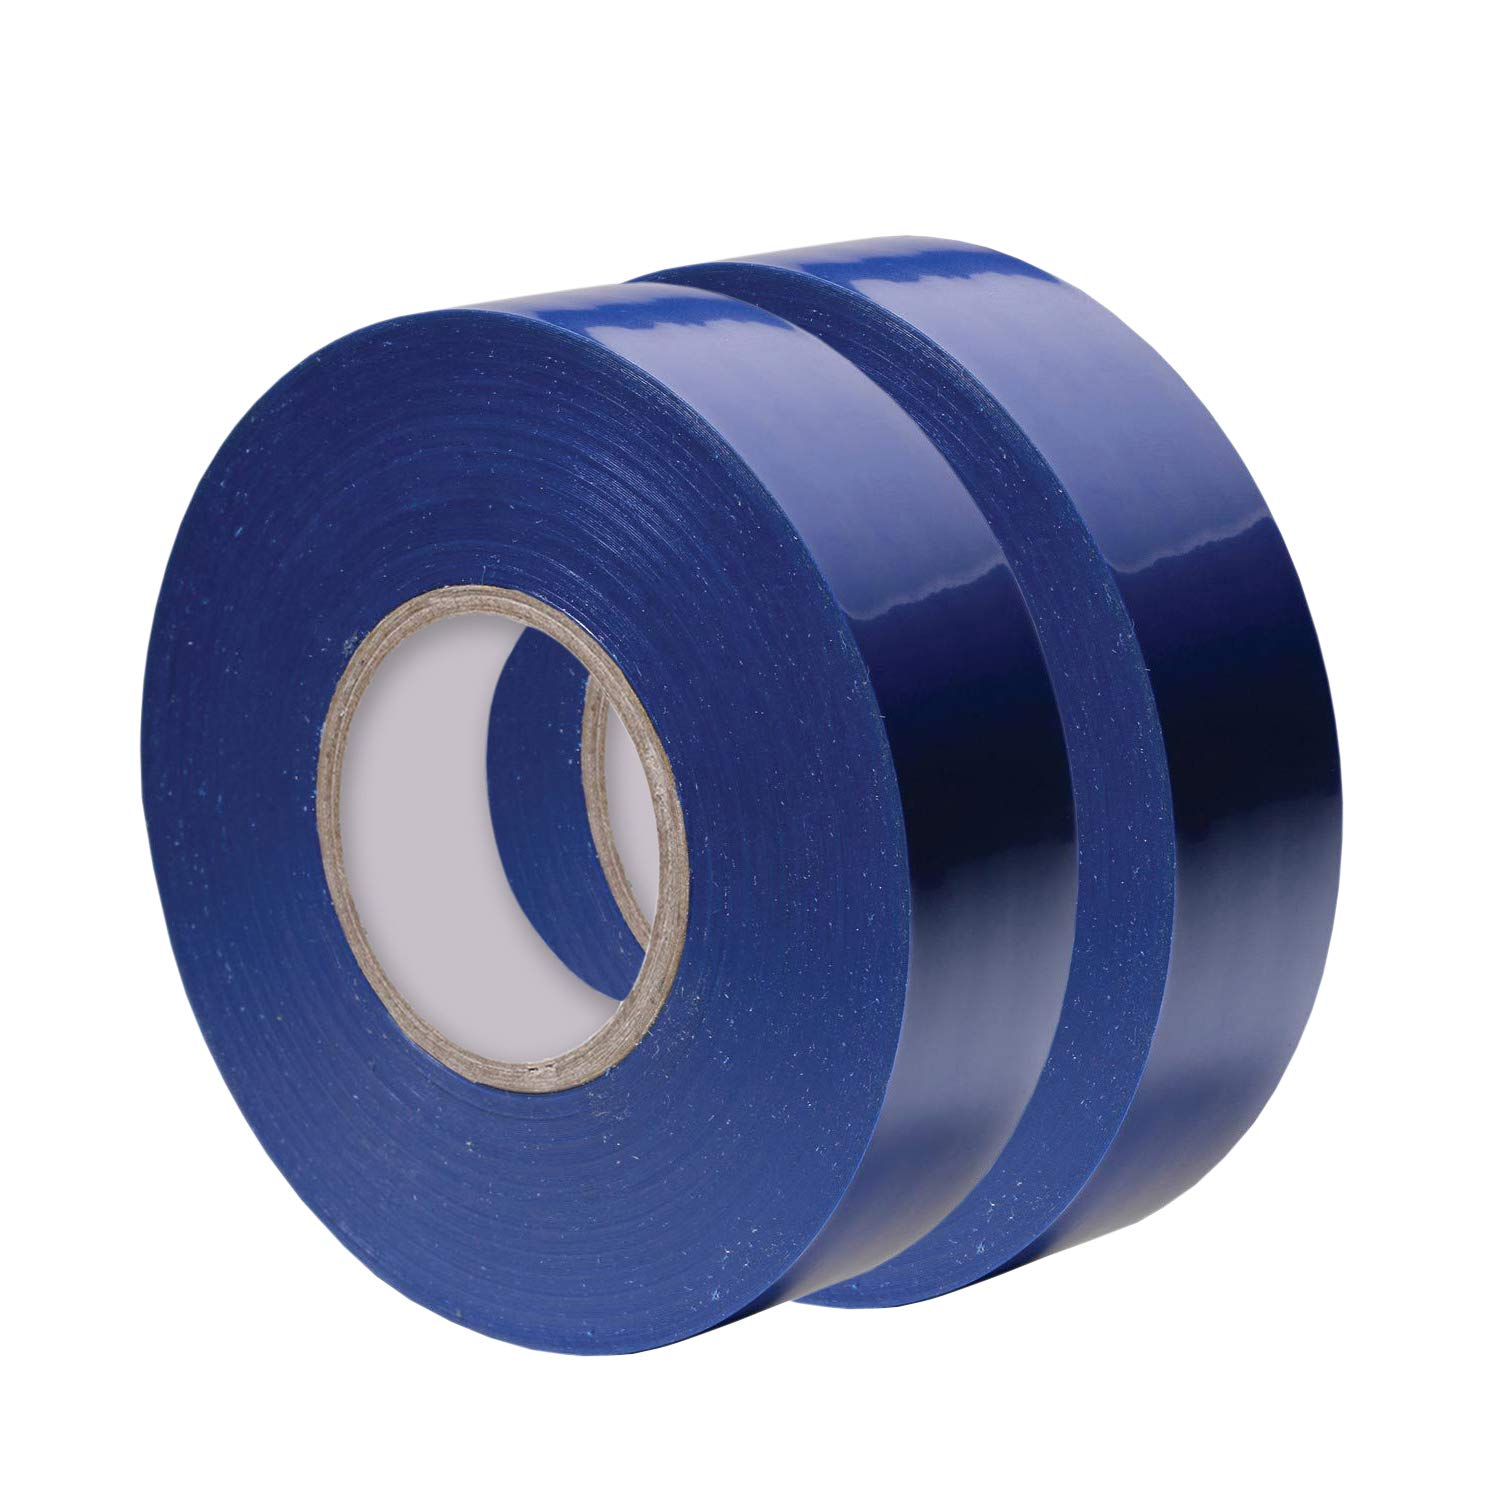 "20 Rolls Black Vinyl Electrical Tape 3//4/"" x 60 FT Flame Retardant UL Listed RoHS"